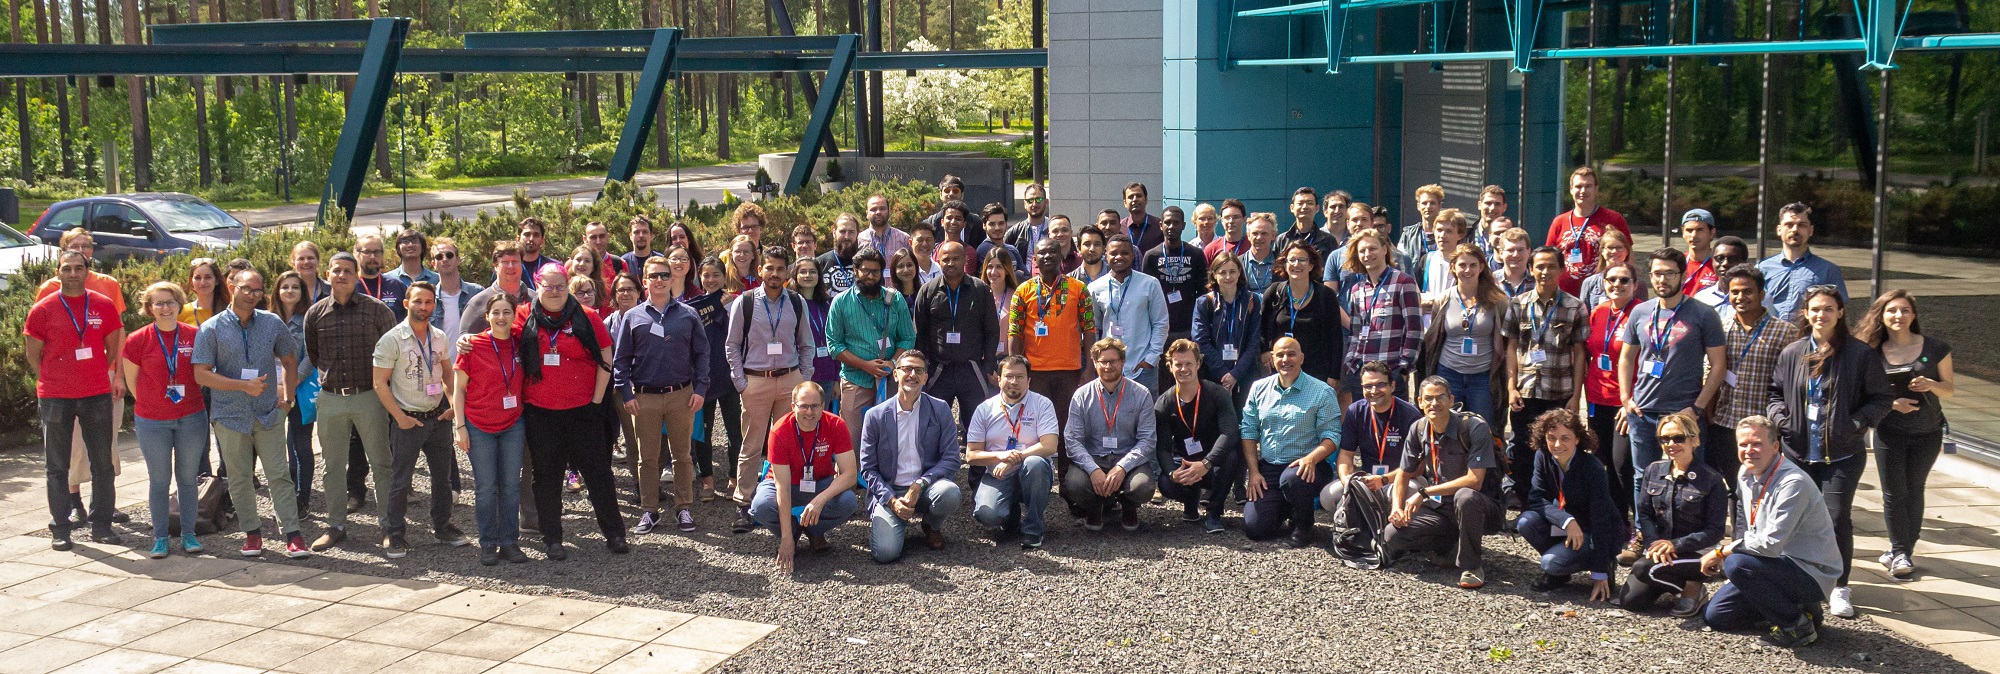 UBISS 2019 enrolled a record number of 83 students from 10 countries in 4 parallel workshops